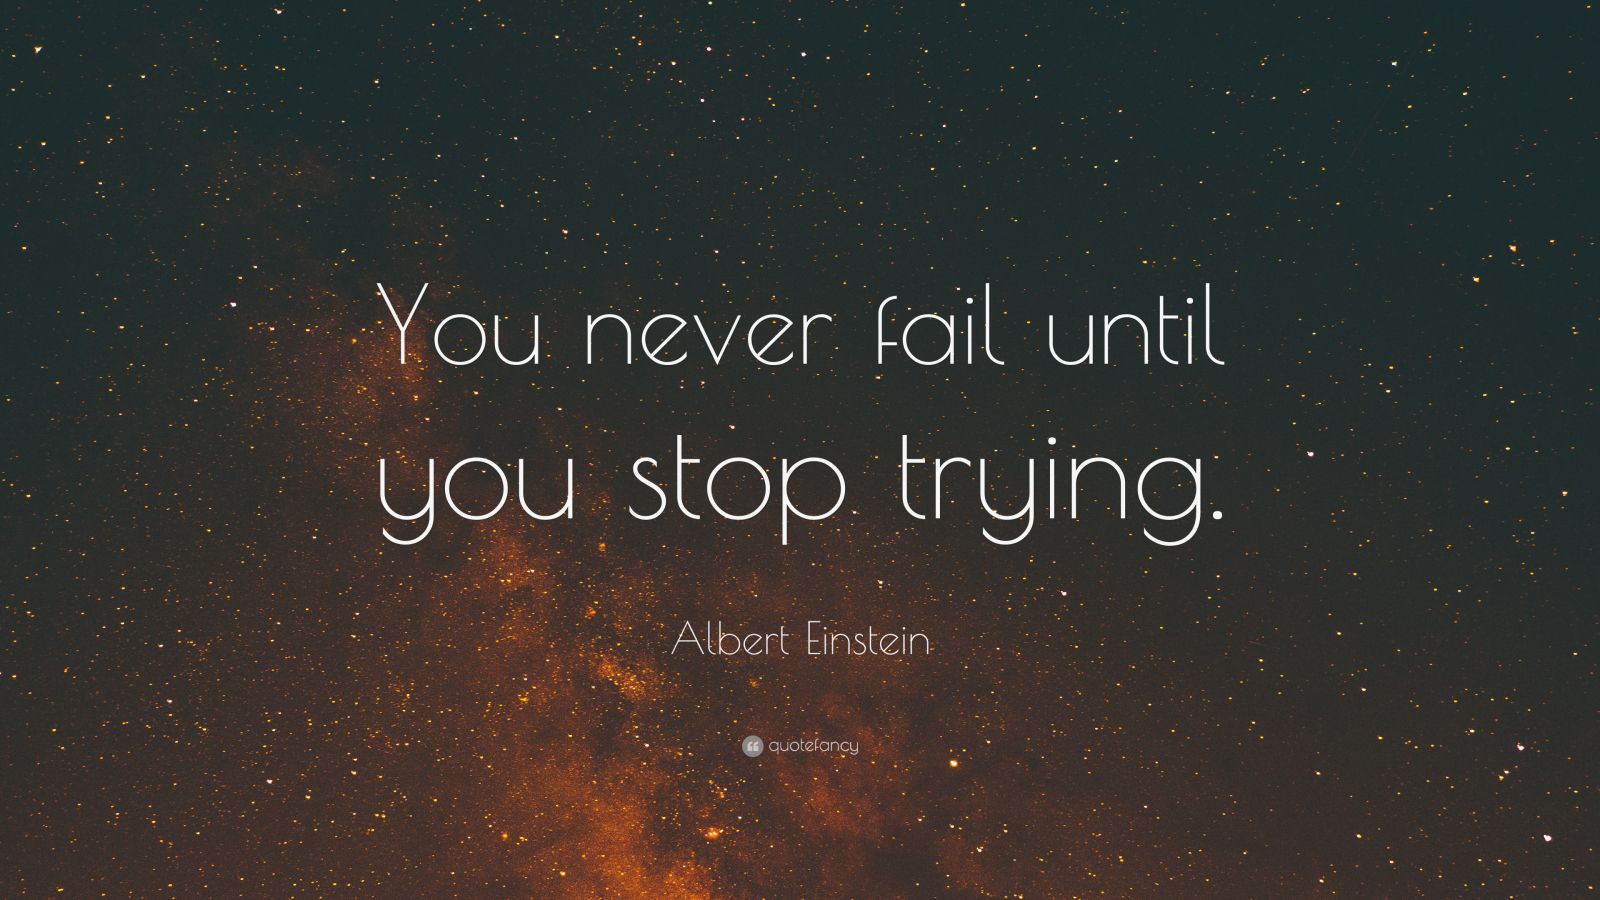 Hd Wallpapers For Laptop 15 6 Inch Screen Albert Einstein Quote You Never Fail Until You Stop